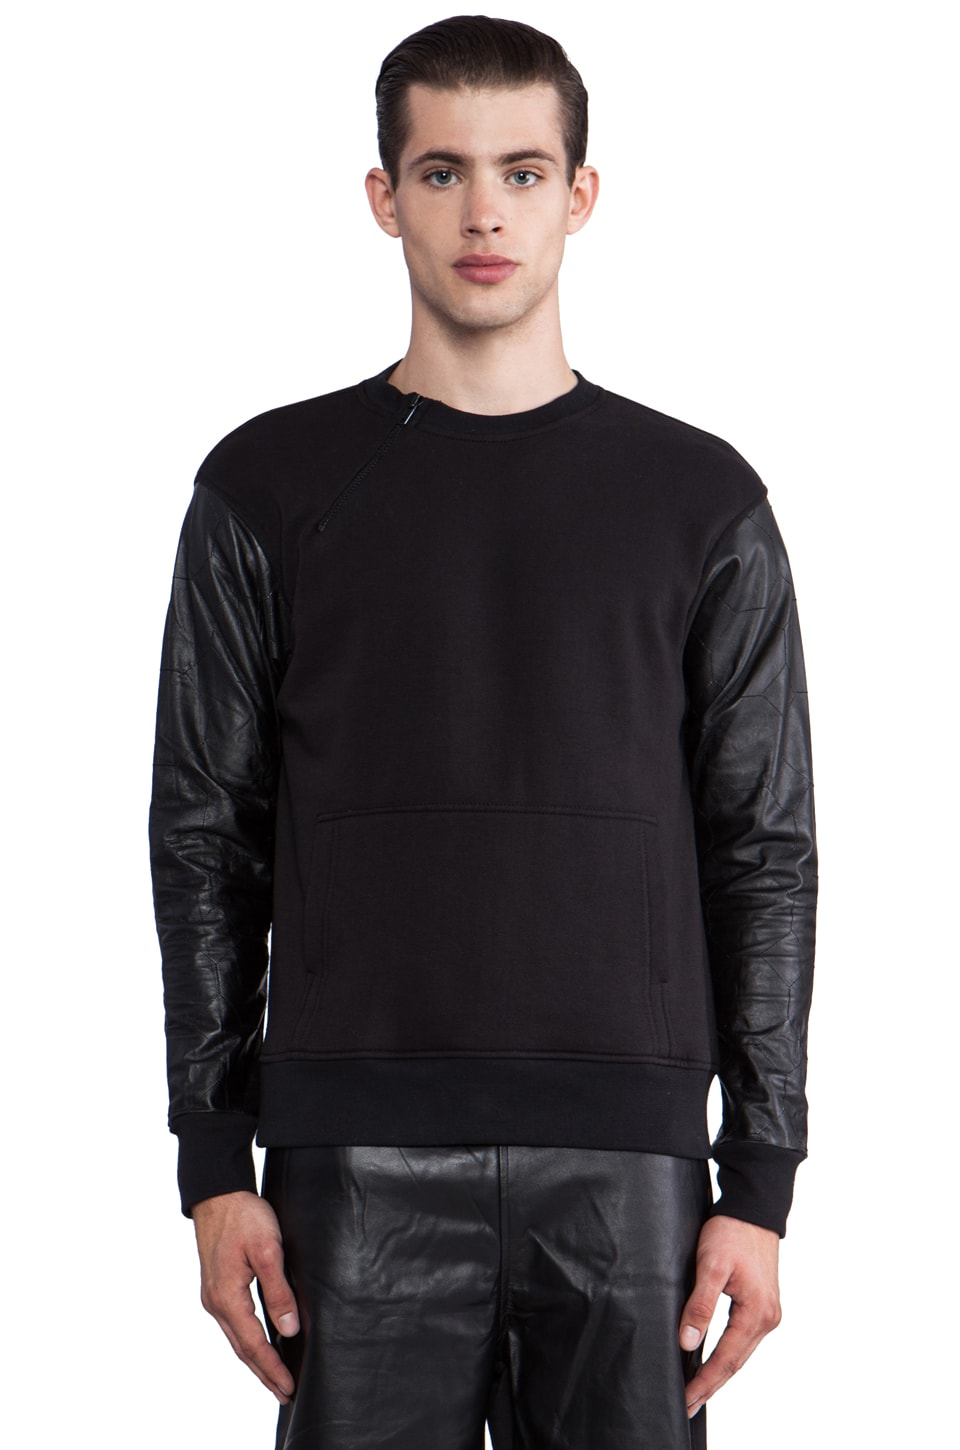 Iridium Sweatshirt w/Embossed Leather Sleeves in Black